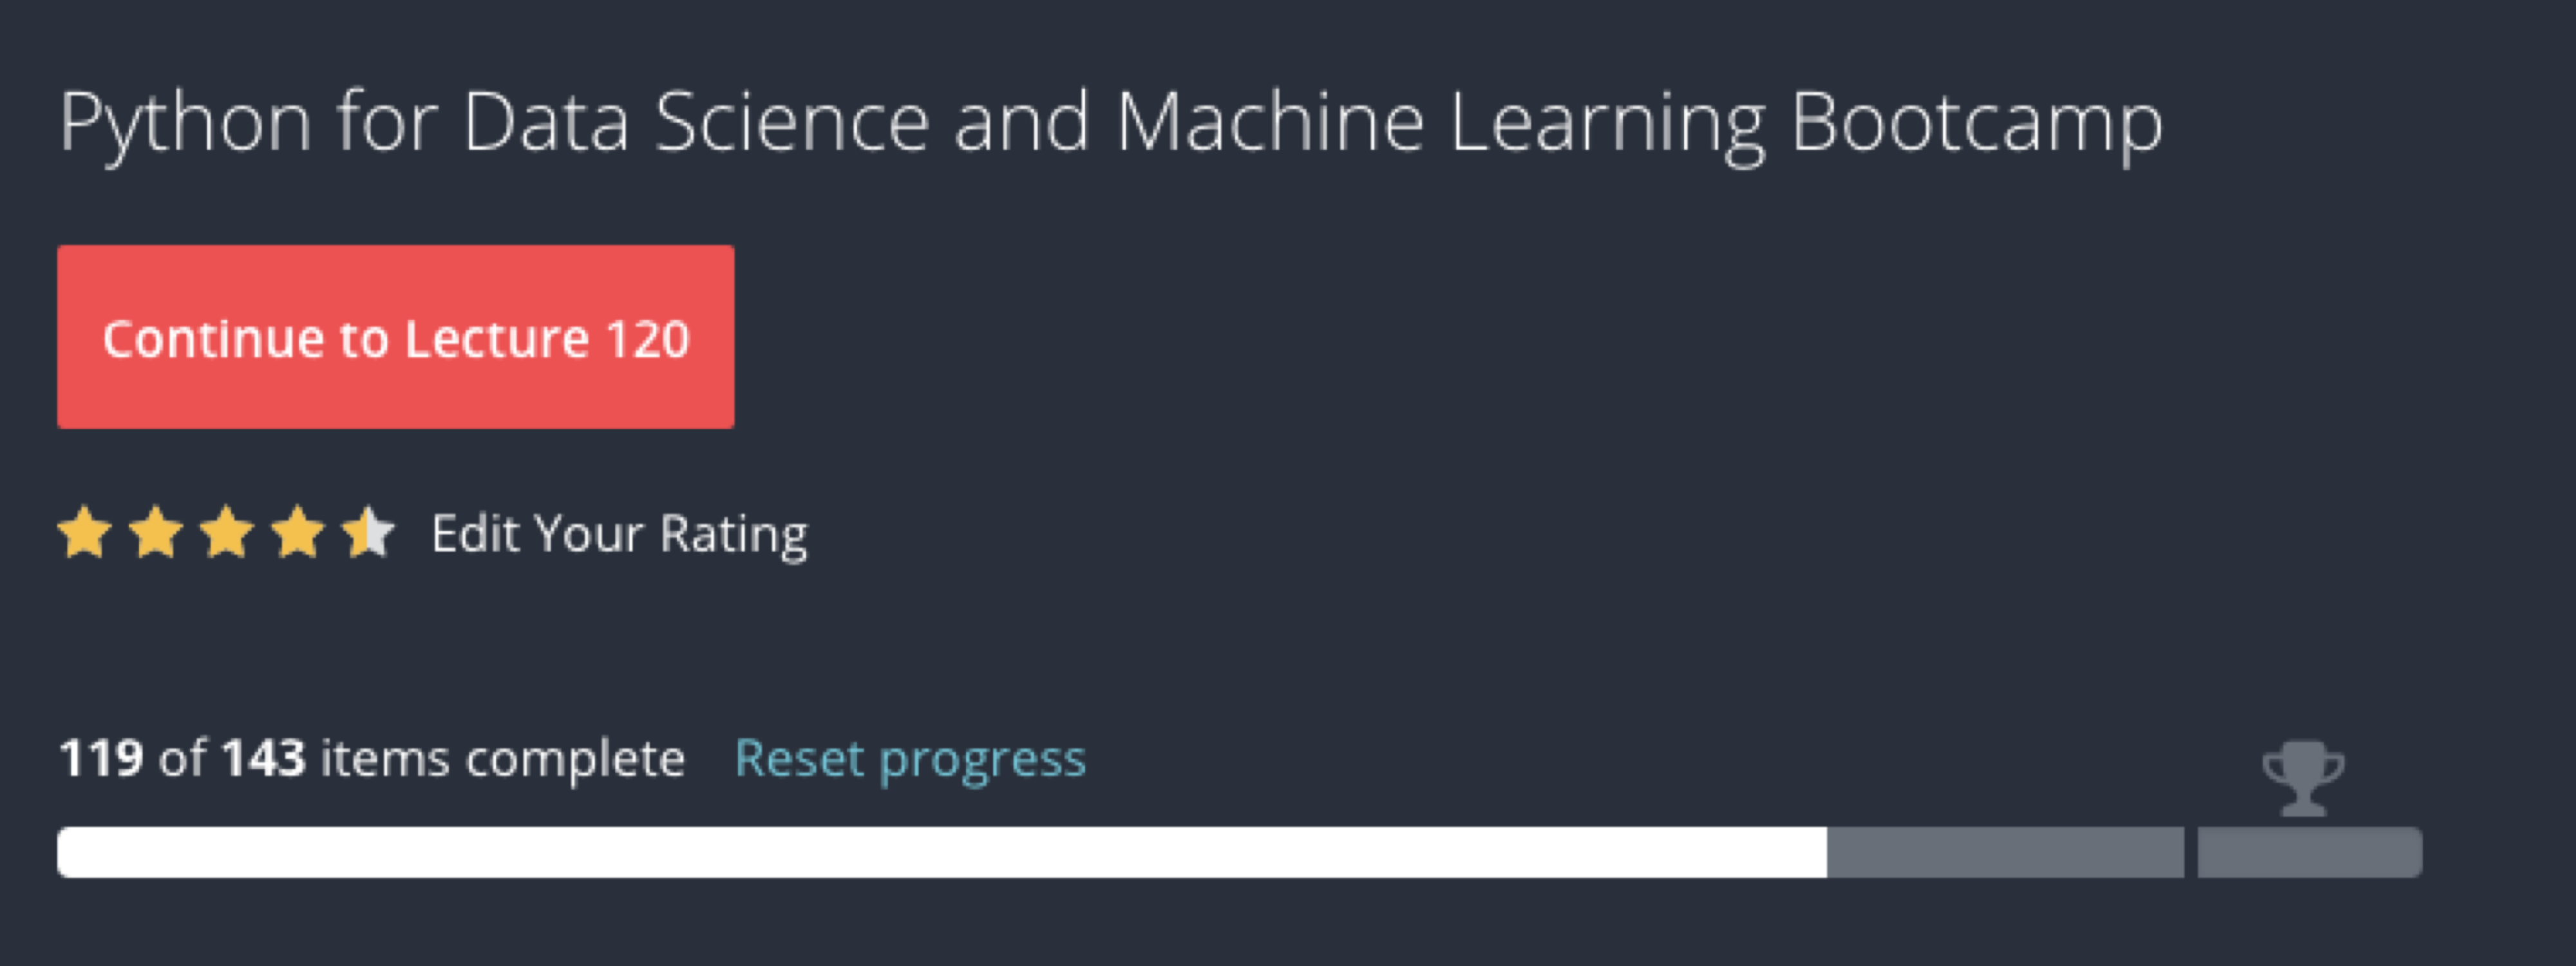 Python for Data Science and Machine Learning Bootcamp Review